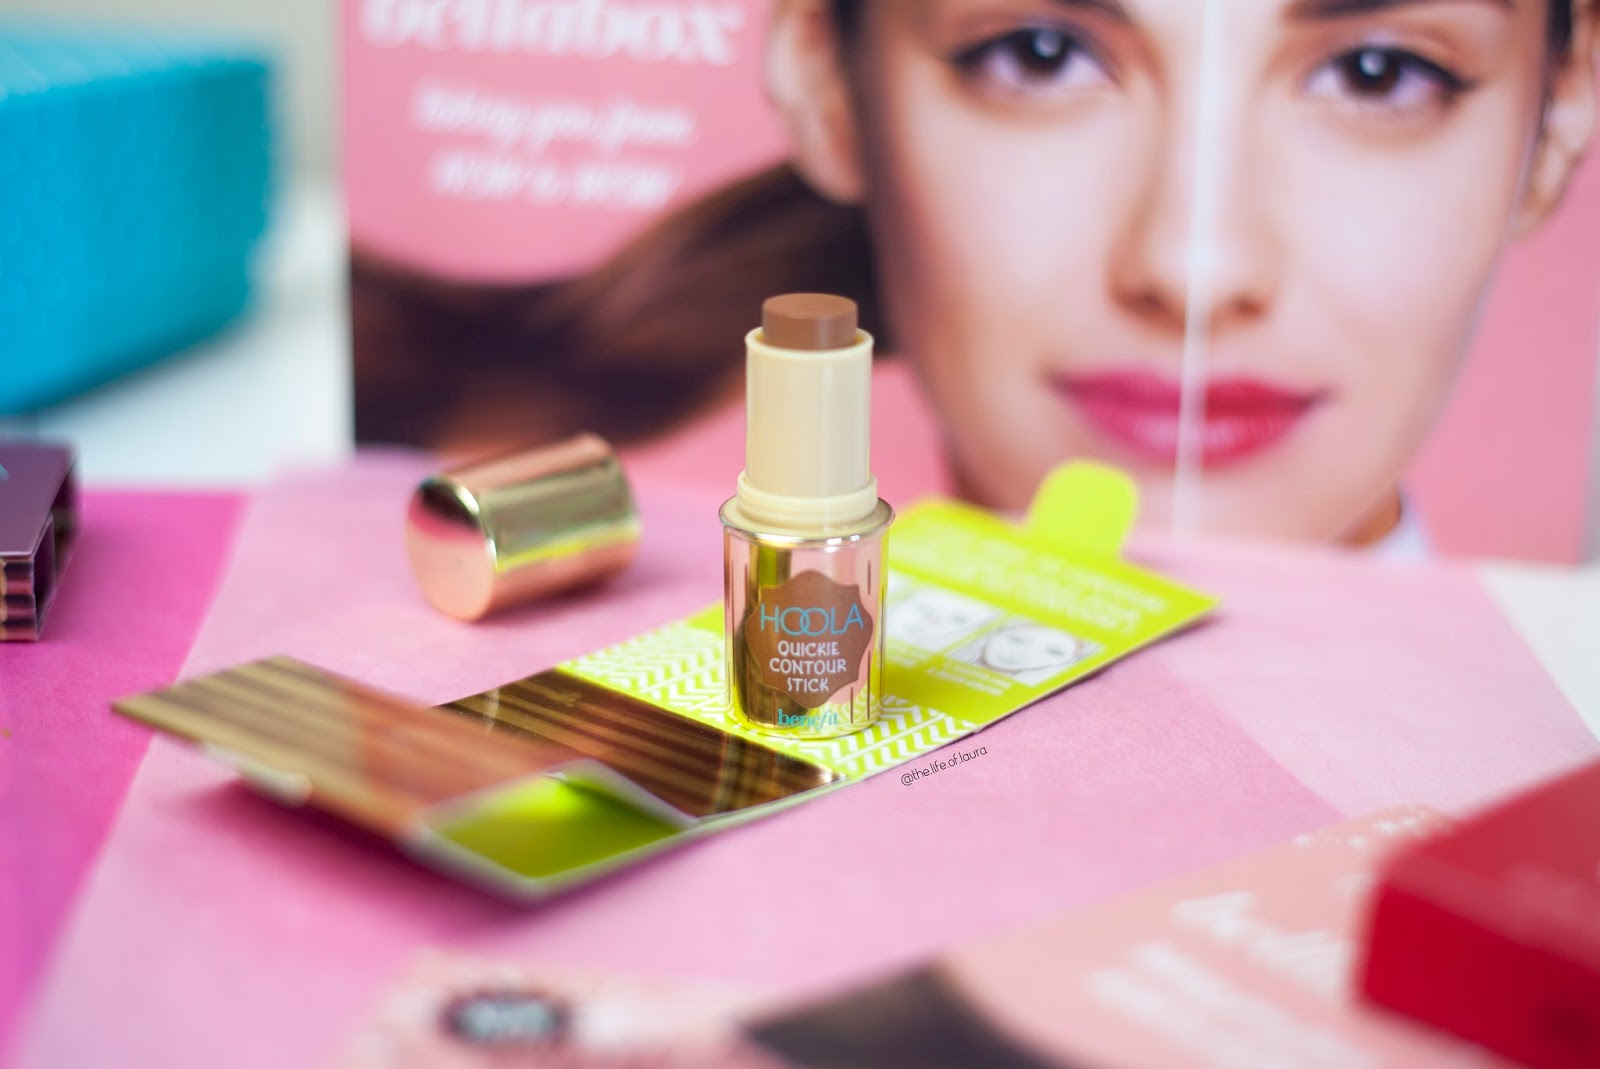 Bellabox x Benefit Hoola Contour Stick